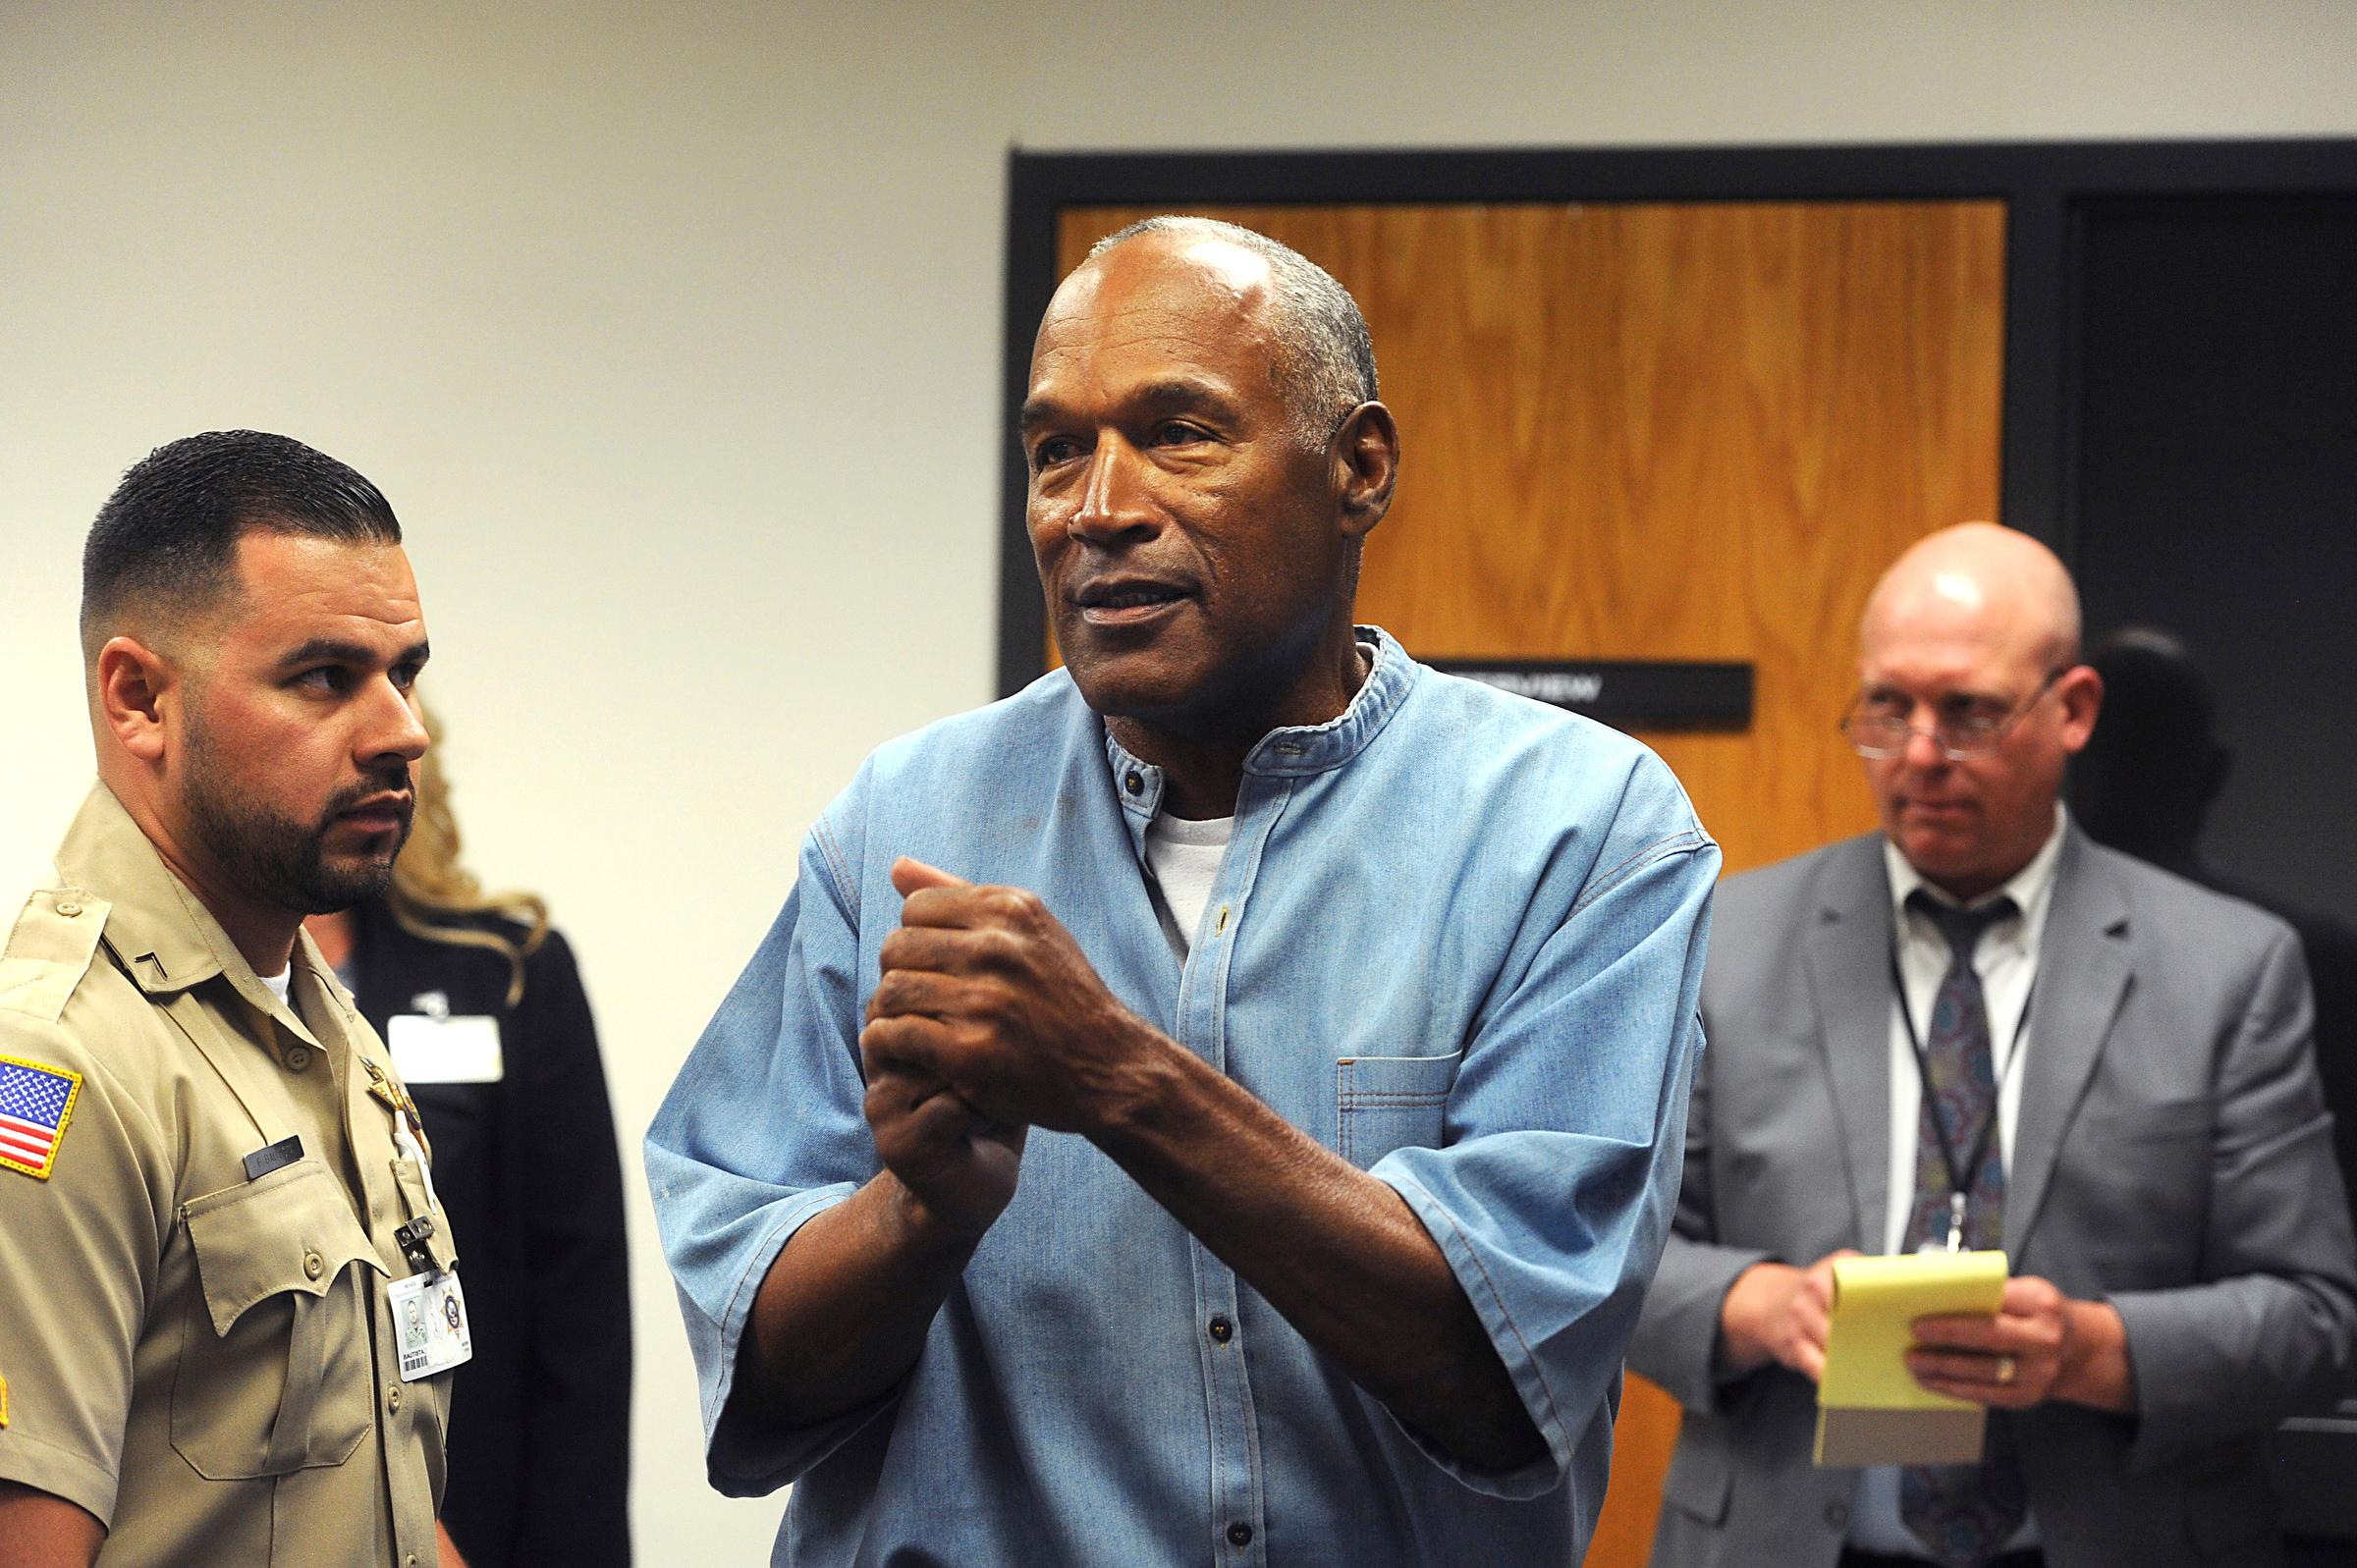 Former NFL football star O.J. Simpson reacts after learning he was granted parole at Lovelock Correctional Center in Lovelock, Nev., on Thursday, July 20, 2017.  Simpson was convicted in 2008 of enlisting some men he barely knew, including two who had guns, to retrieve from two sports collectibles sellers some items that Simpson said were stolen from him a decade earlier.   (Jason Bean/The Reno Gazette-Journal via AP, Pool)